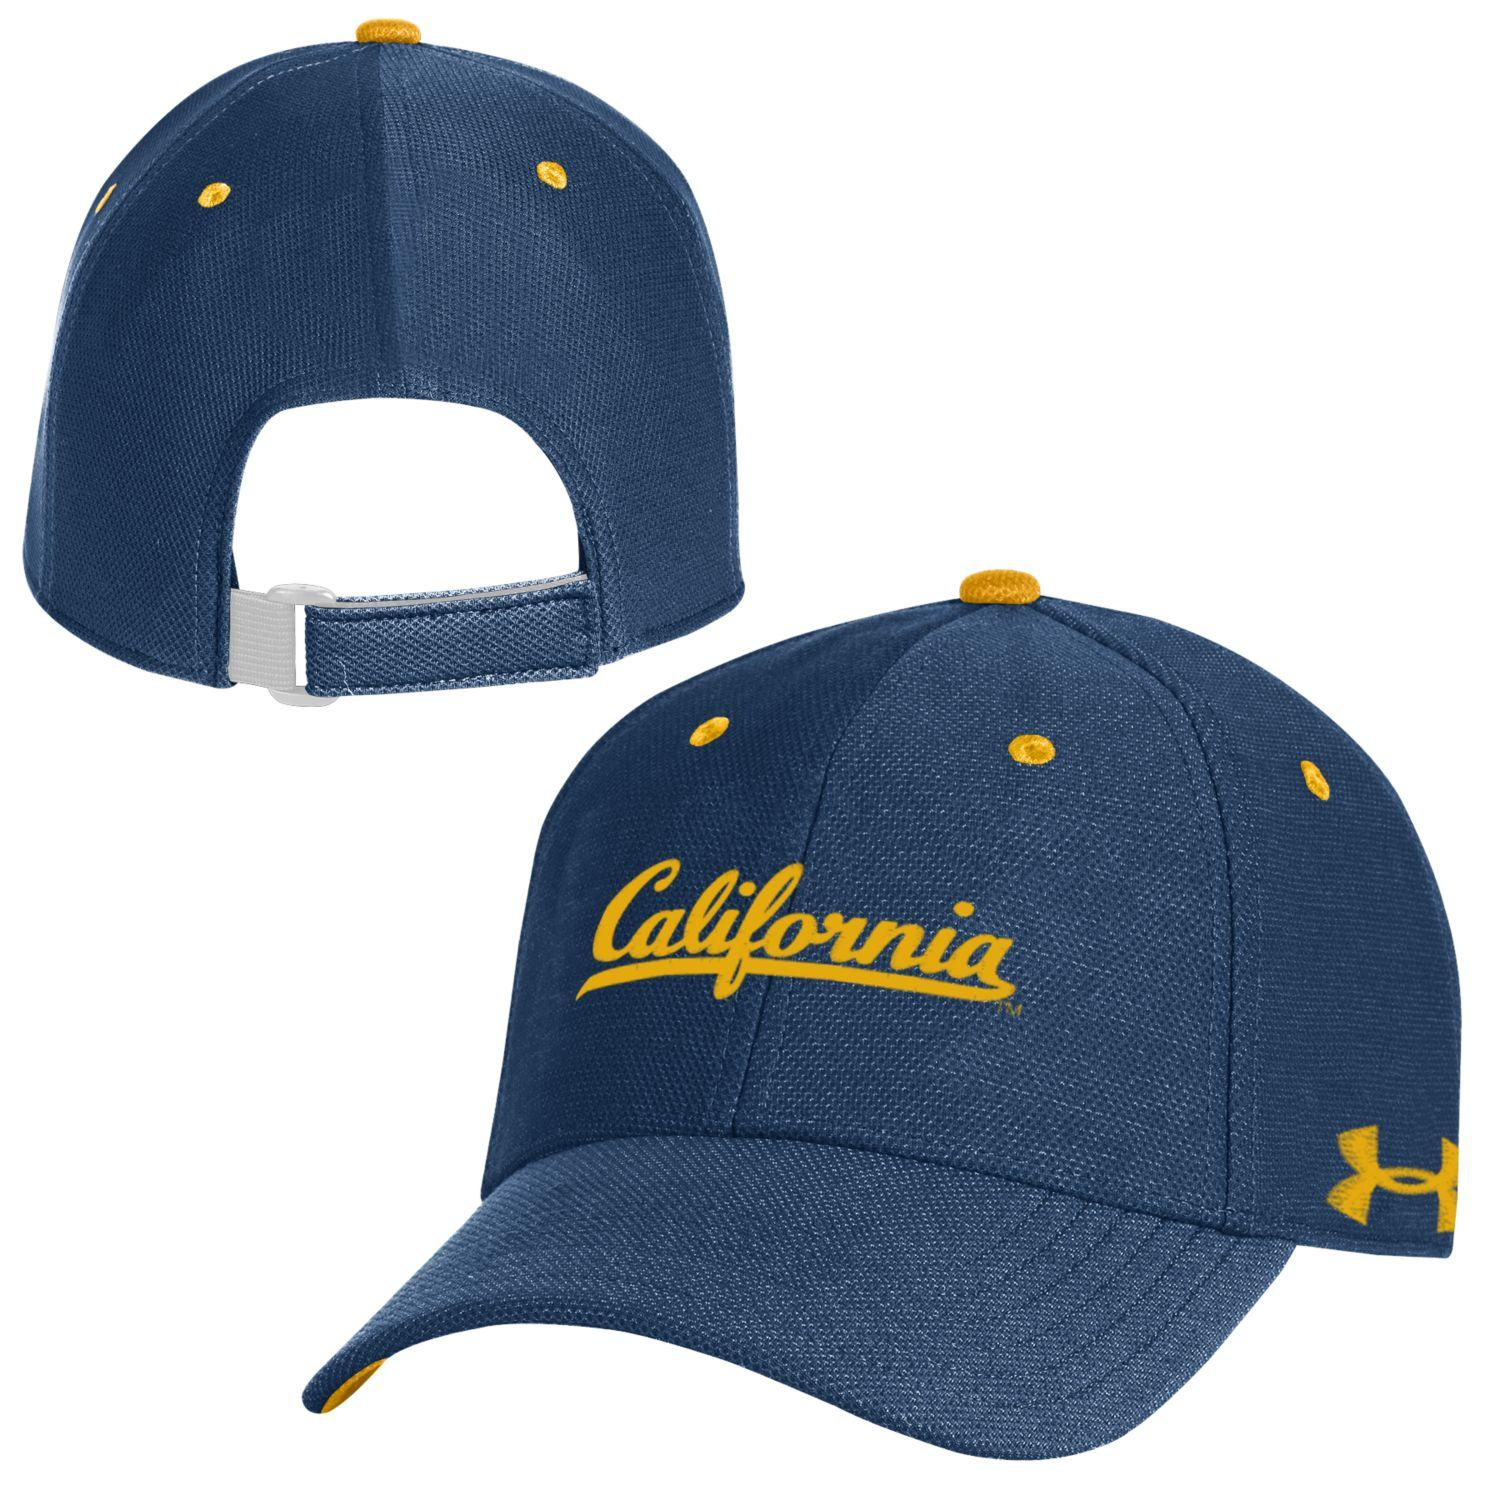 M Blitzing Adjustable 3.0 Cap California Script